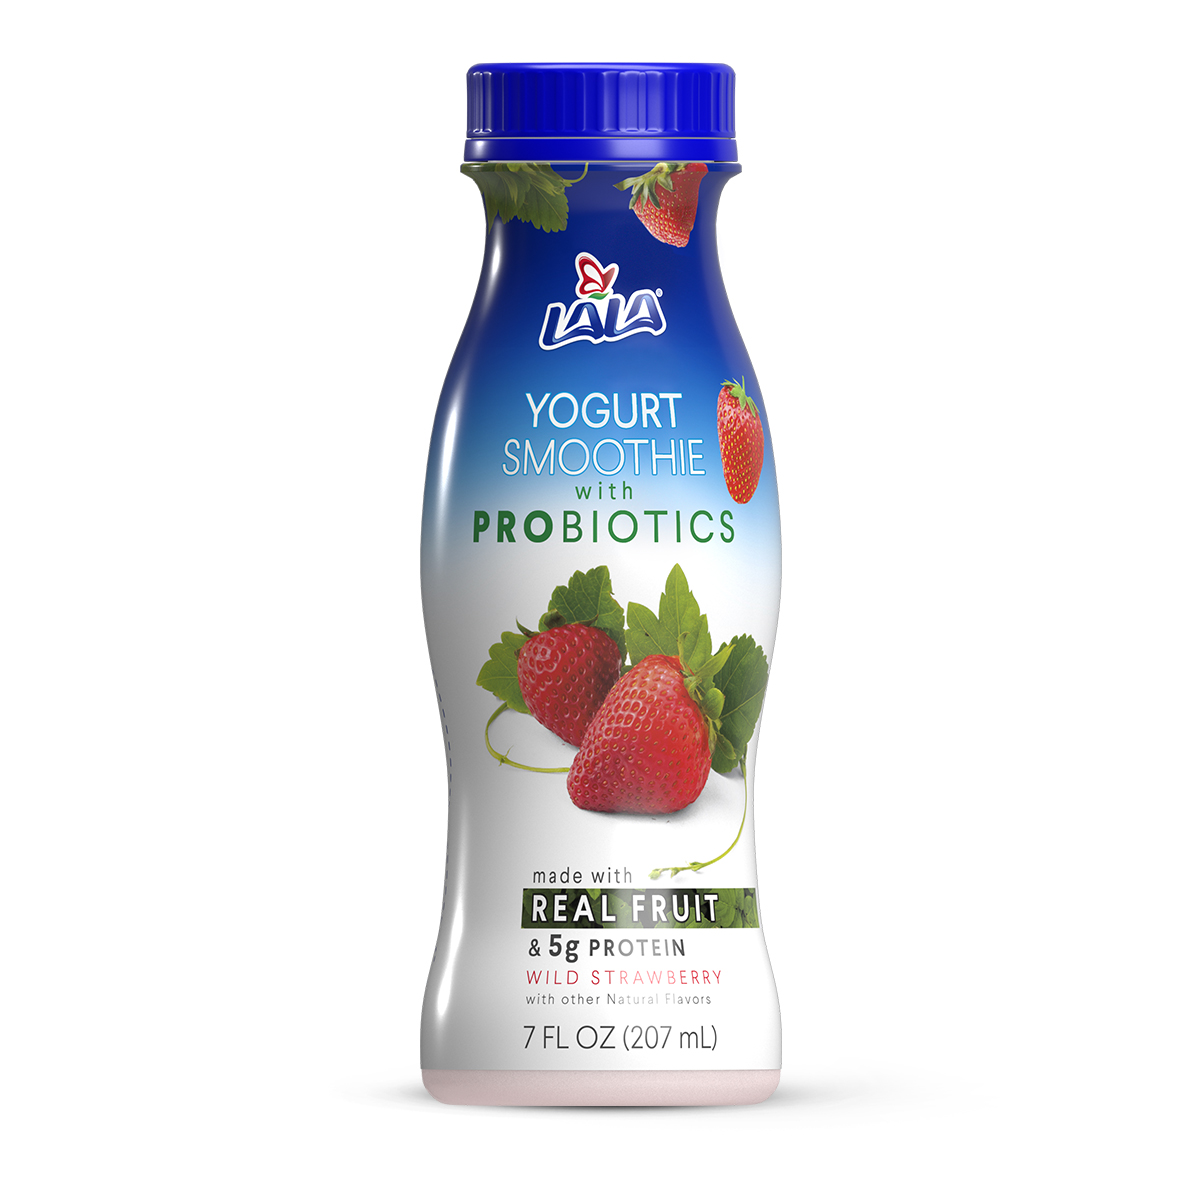 LALA Drinkable Yogurt Smoothie with Probiotics, 5g of Protein, Wild Strawberry, 7-Ounce Bottle